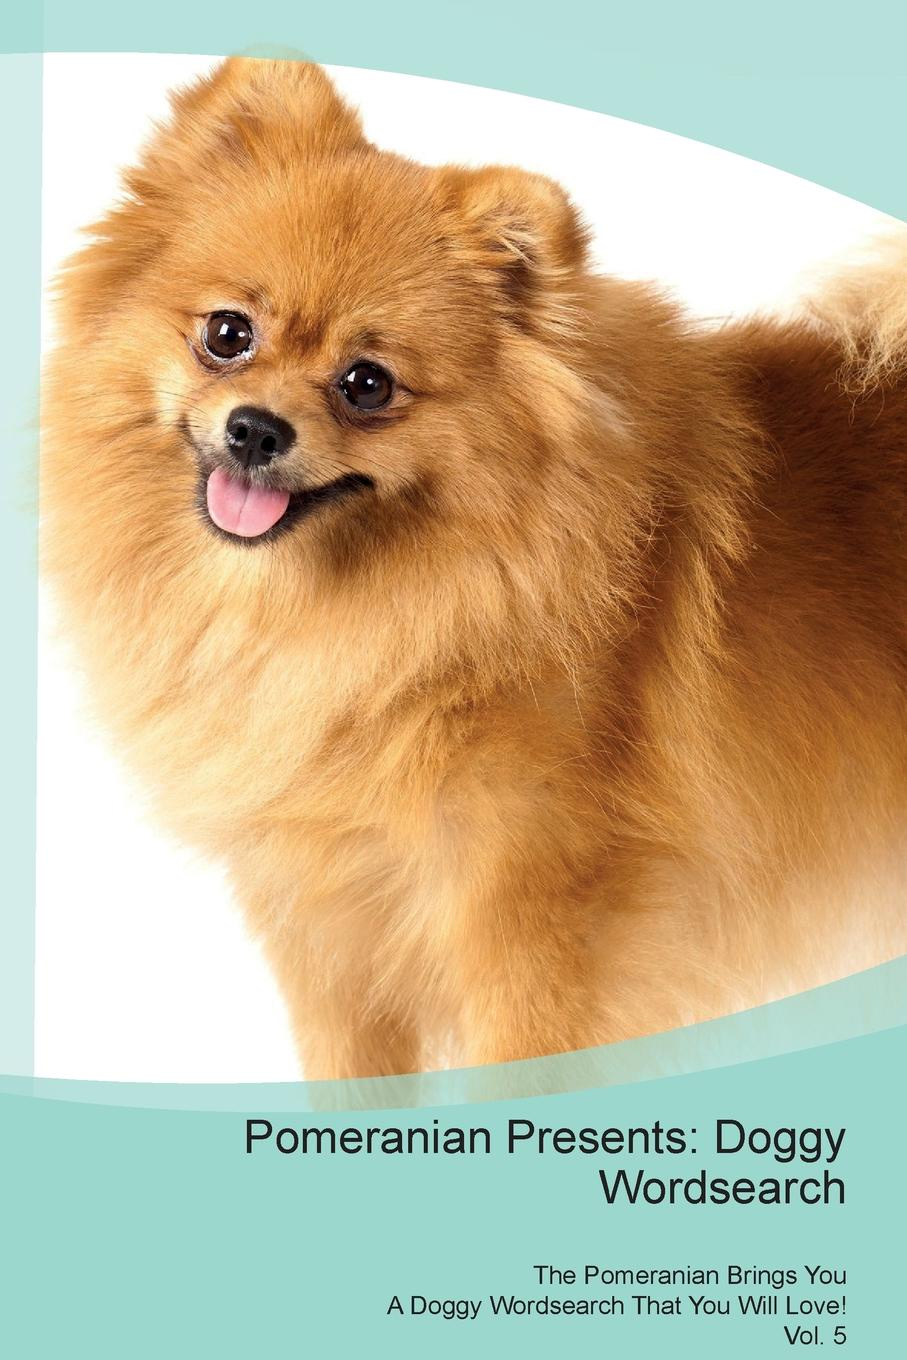 Doggy Puzzles Pomeranian Presents. Wordsearch The Brings You A That Will Love! Vol. 5